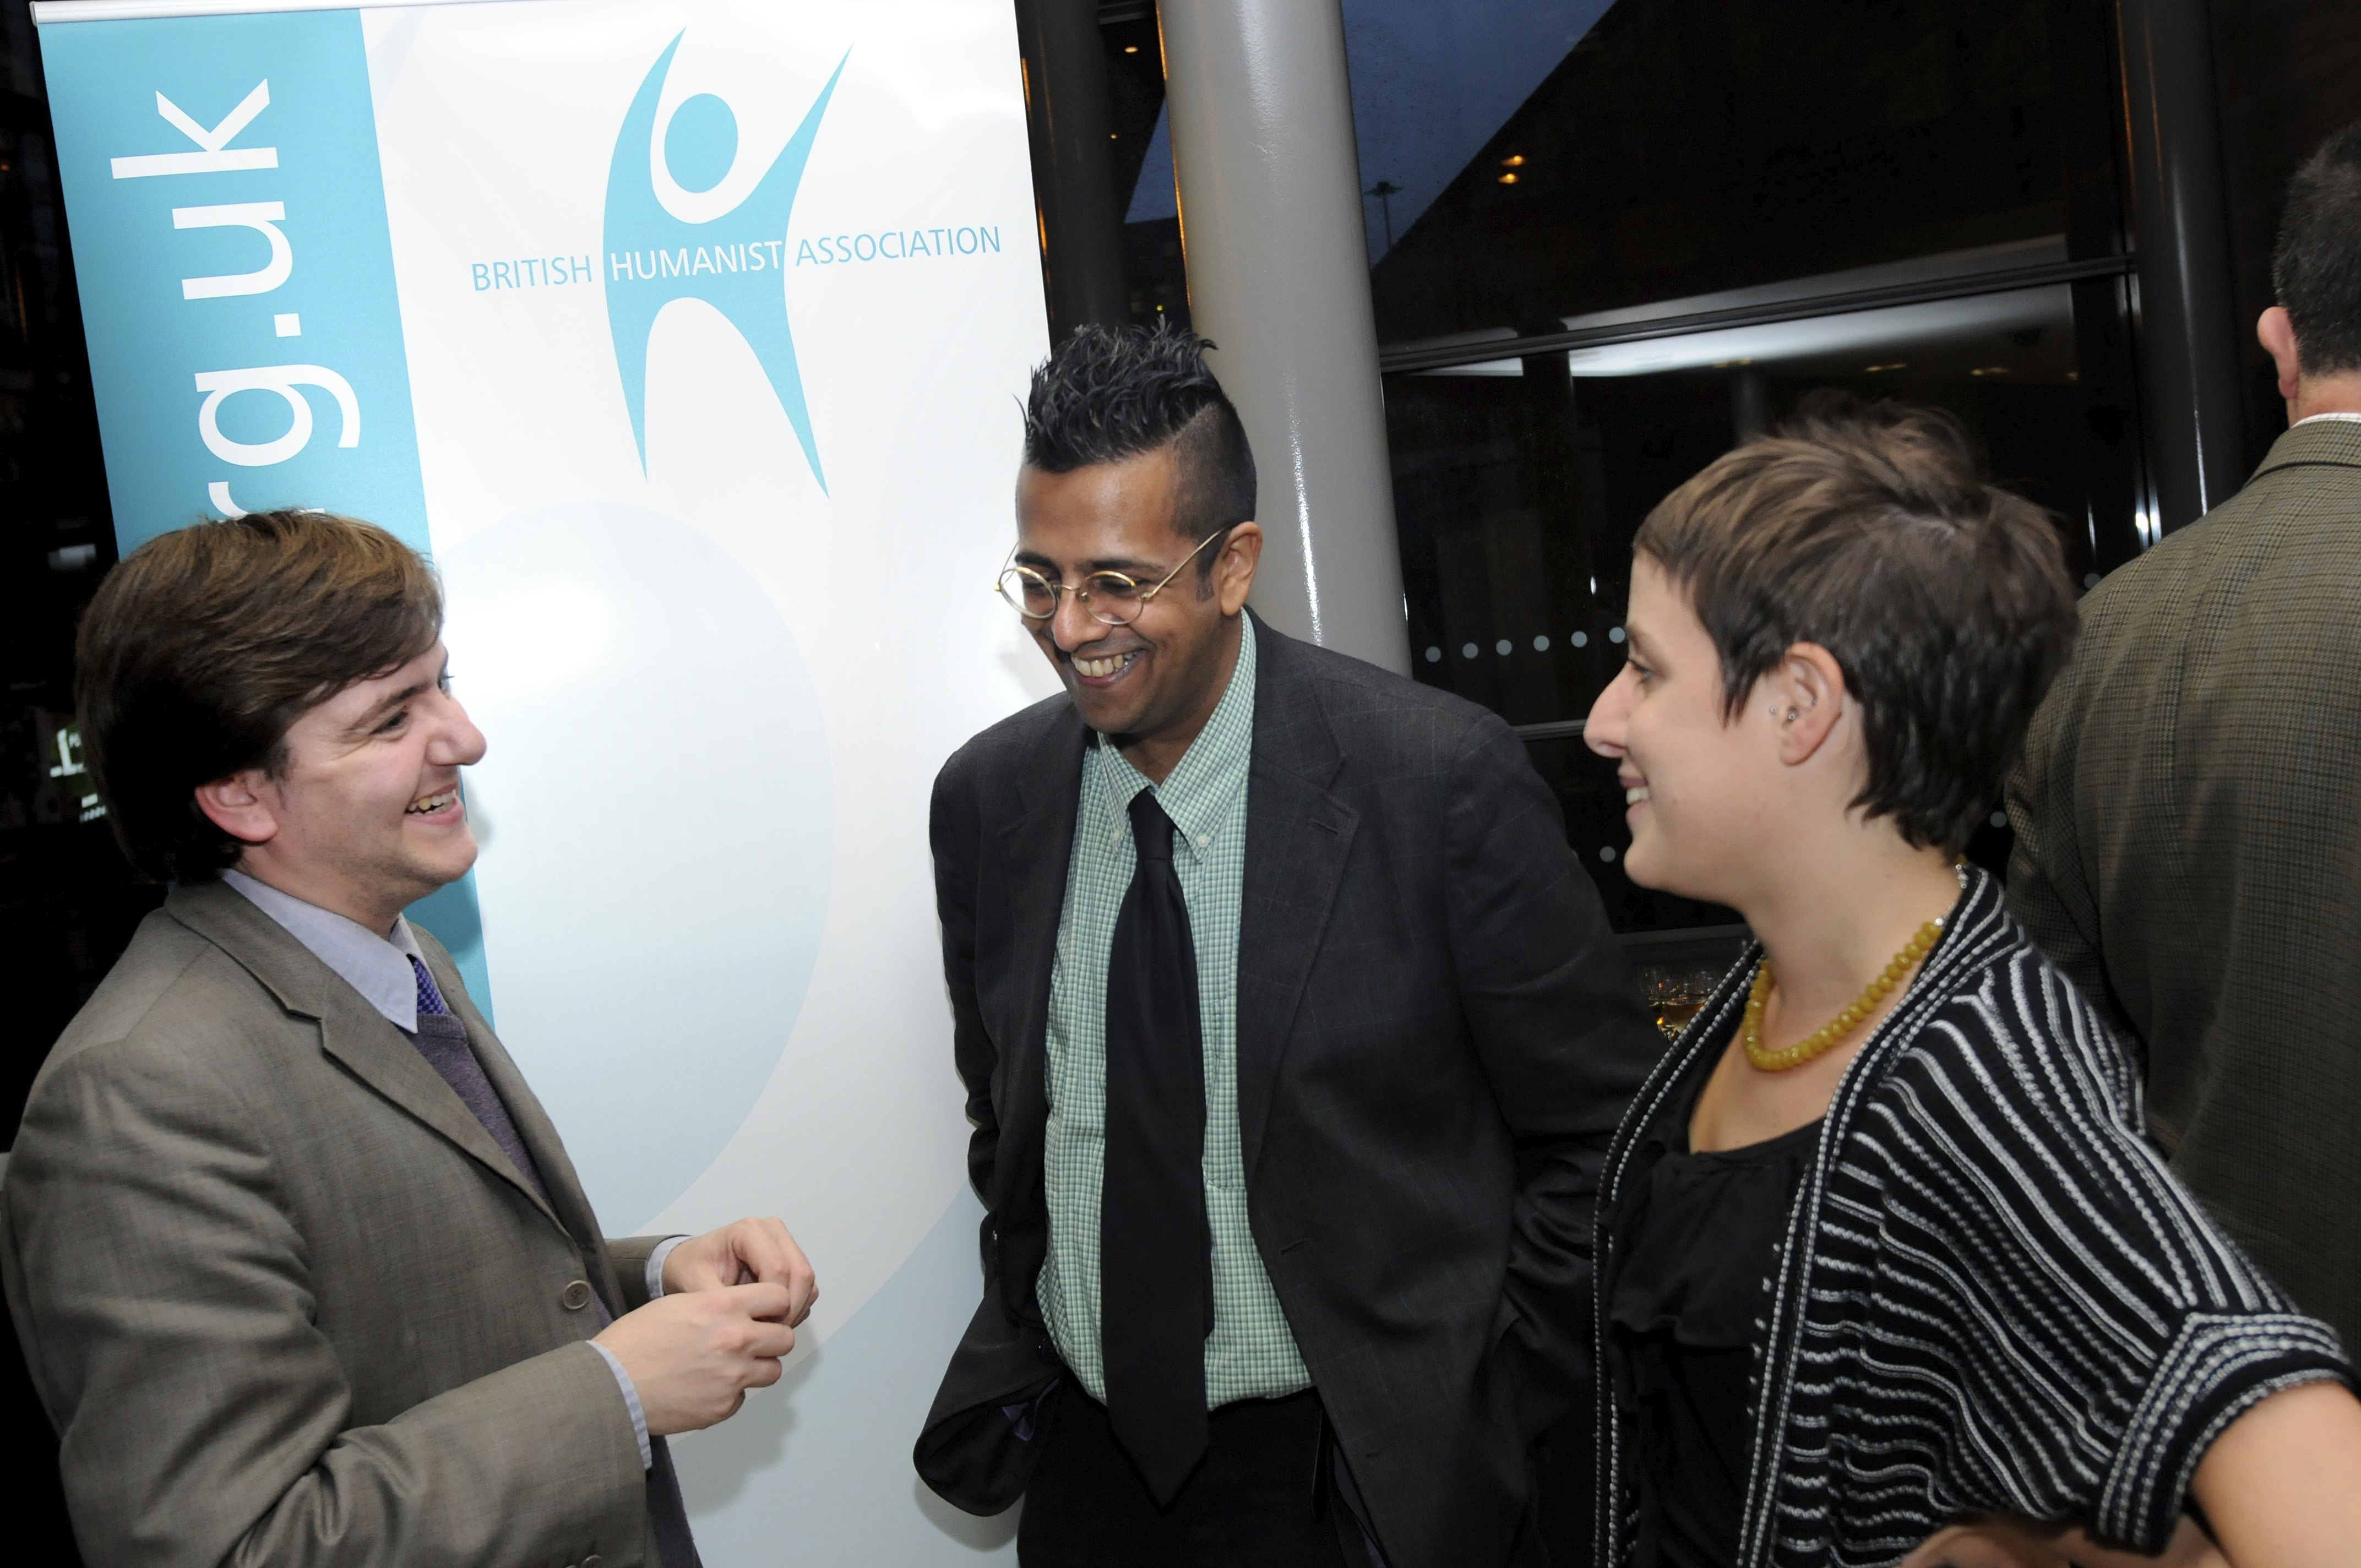 With Simon Singh after his excellent talk